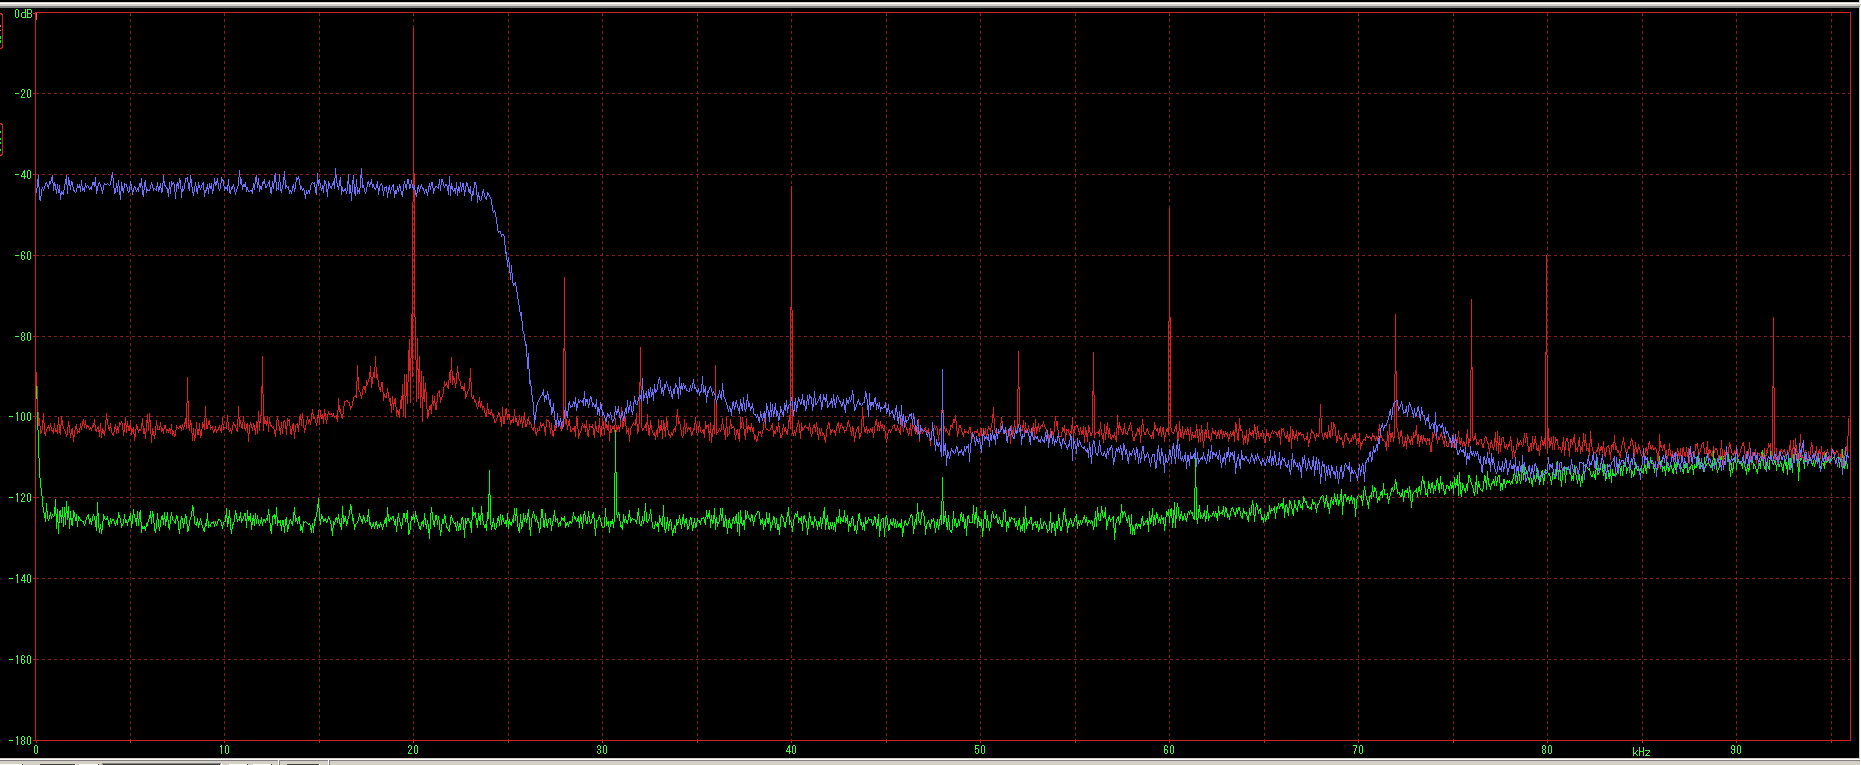 ViewHD Jurgen 5 wideband plot.png